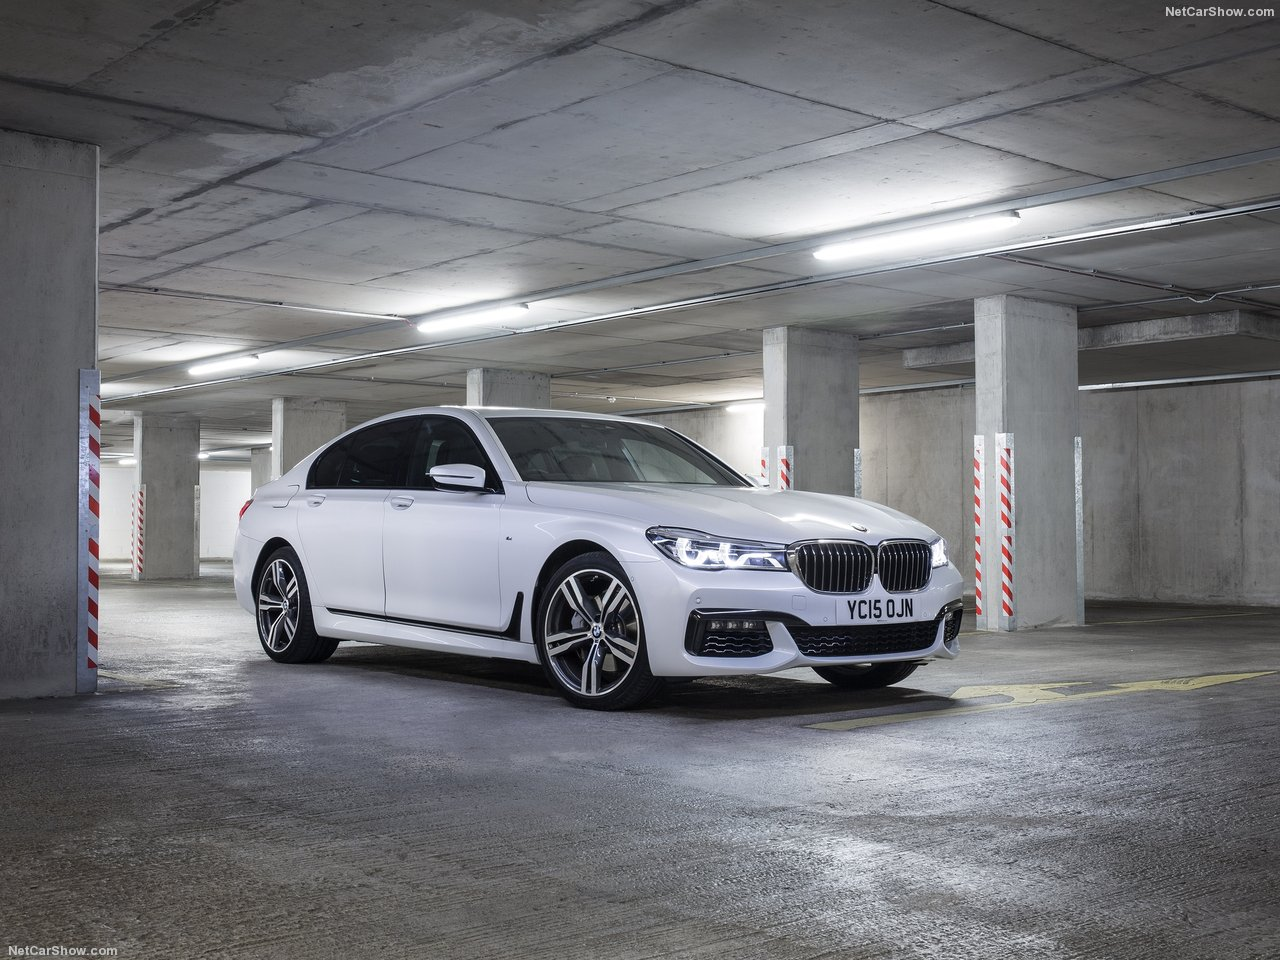 Alpina B7 Turbo E28 Photos Photogallery With 3 Pics Carsbase Com - New bmw 7 series pictures